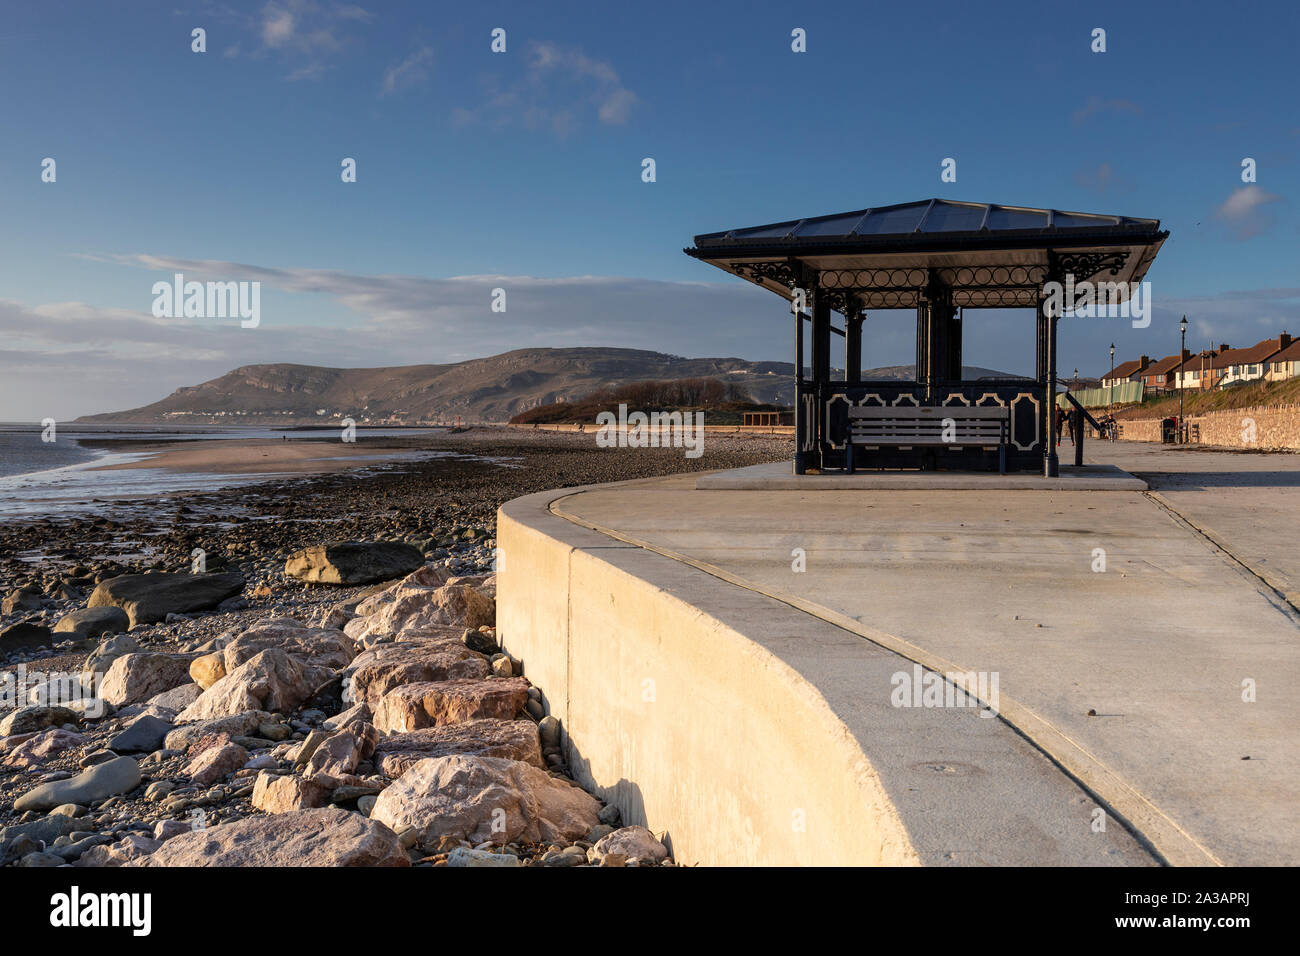 Shelter on the promenade at Deganwy on the North Wales coast Stock Photo